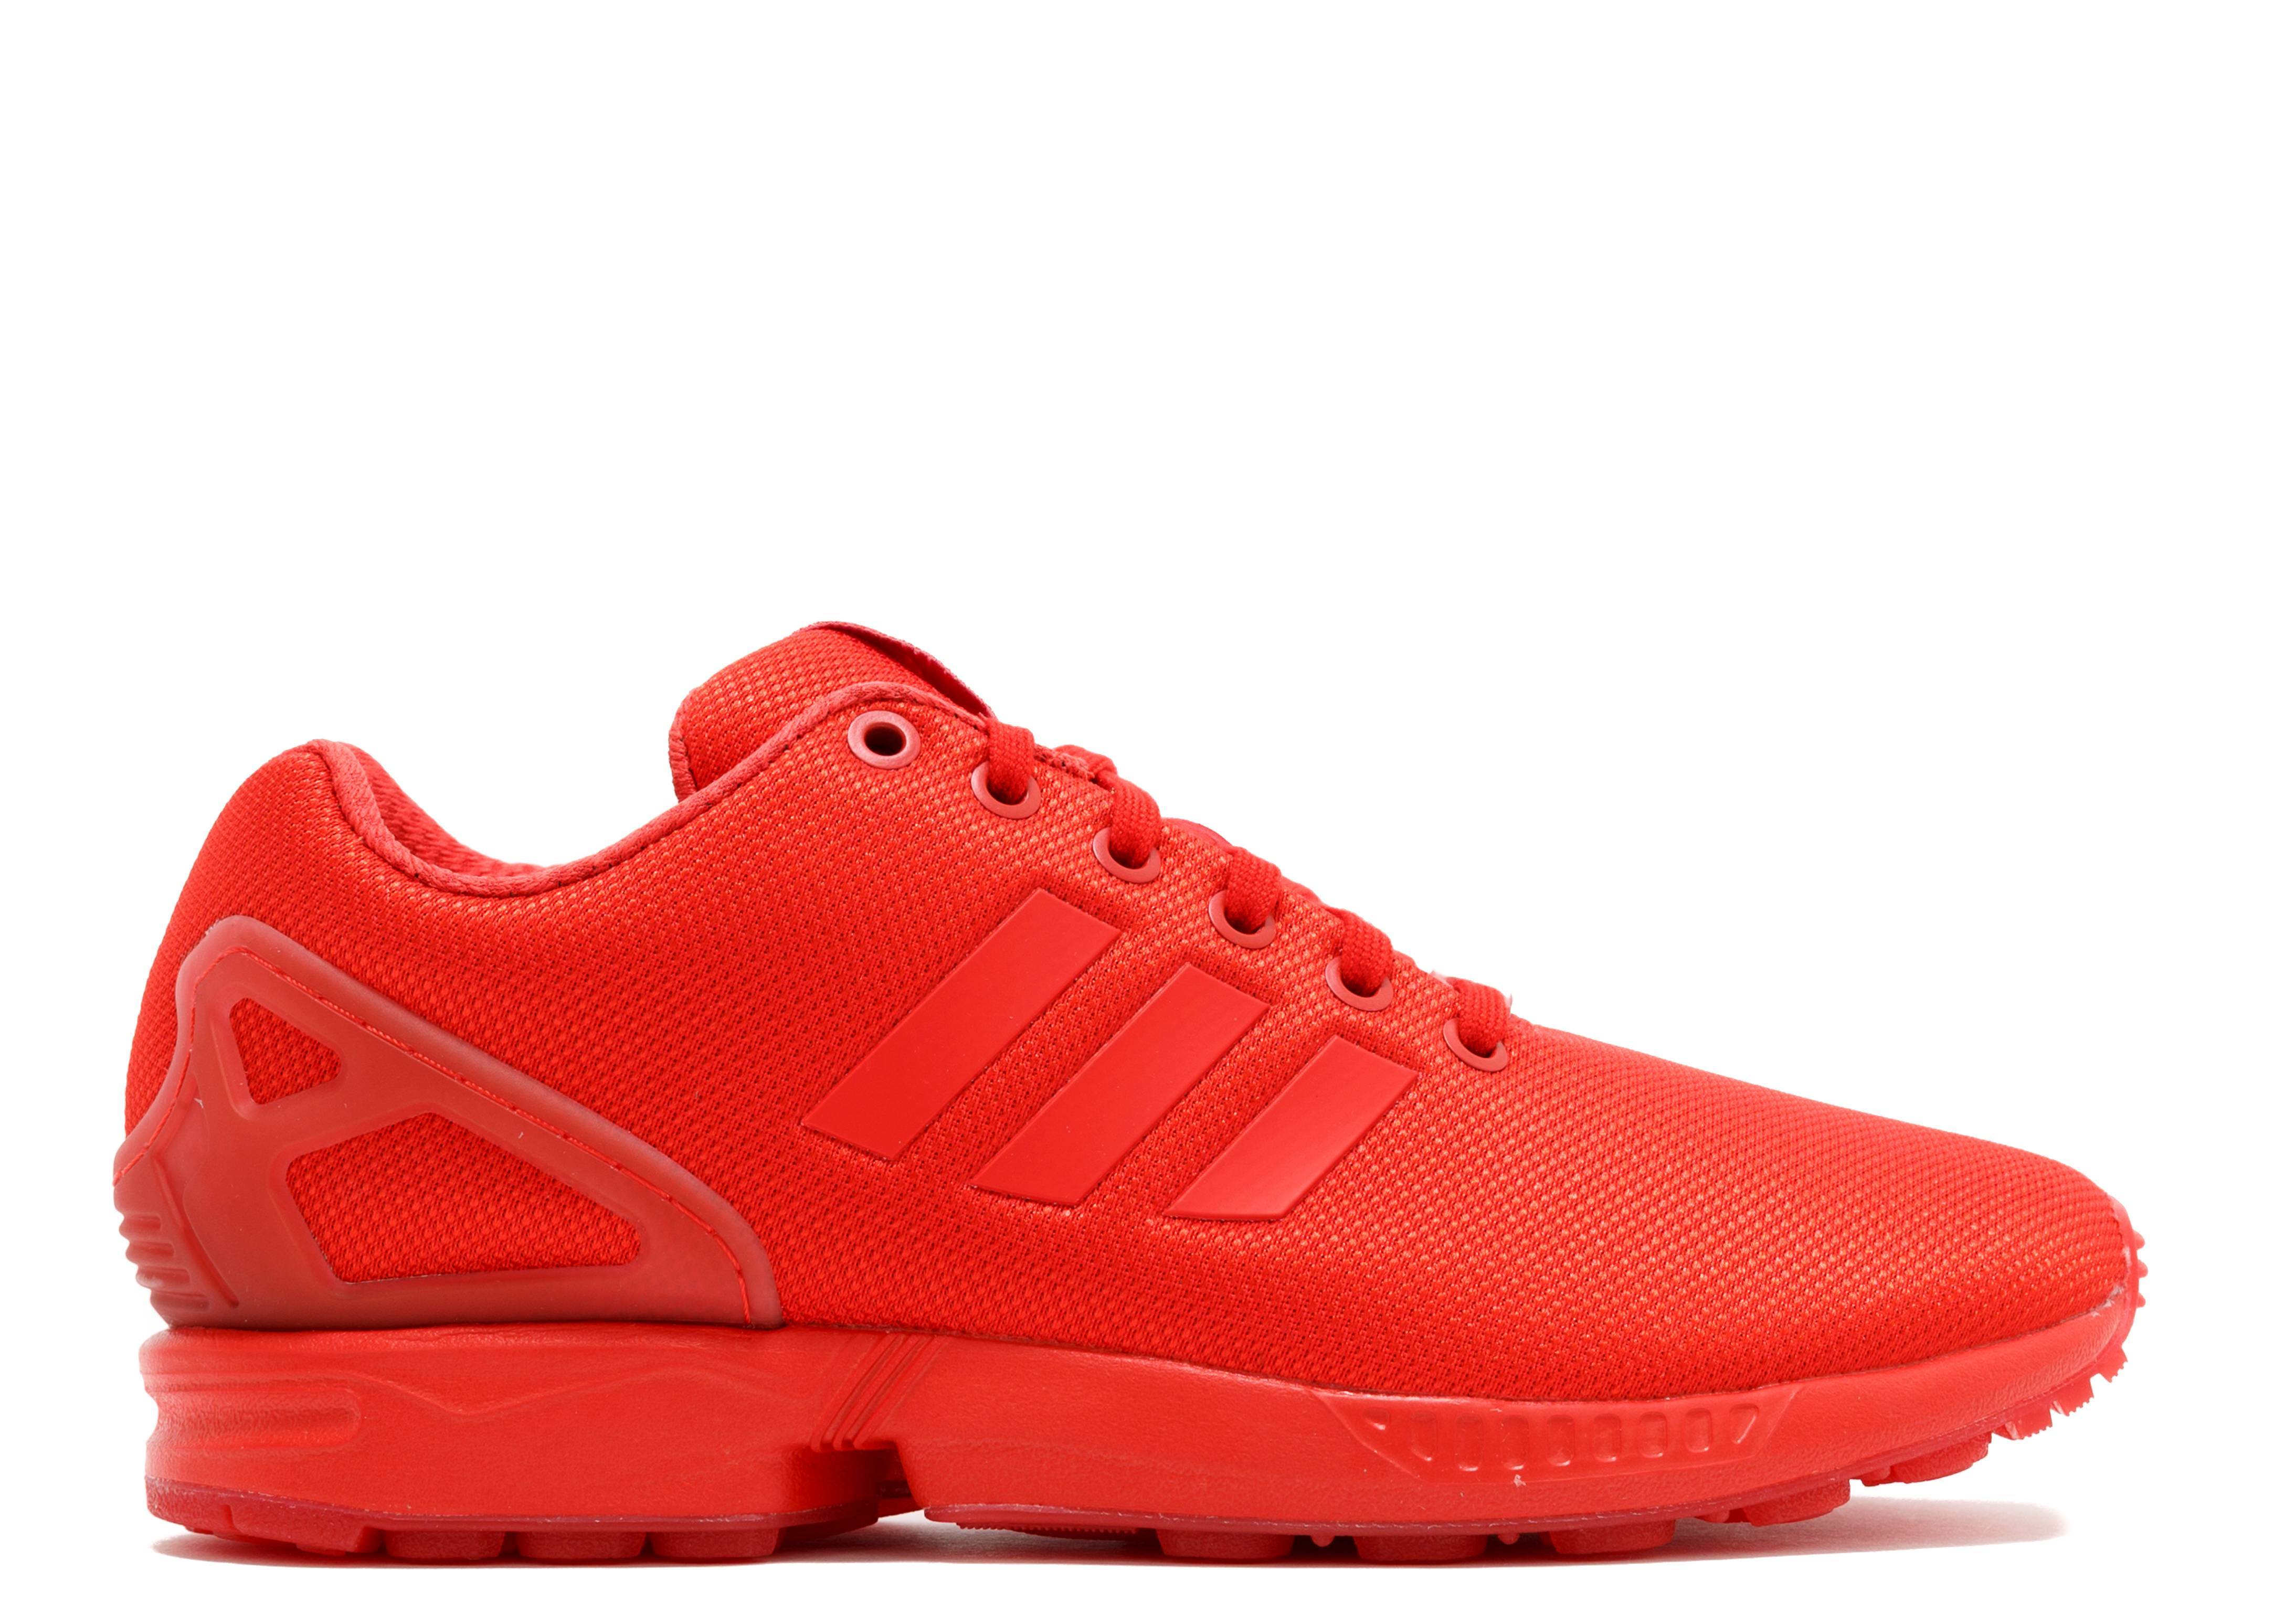 e81c672a34a55 Zx Flux - Adidas - aq3098 - red red red